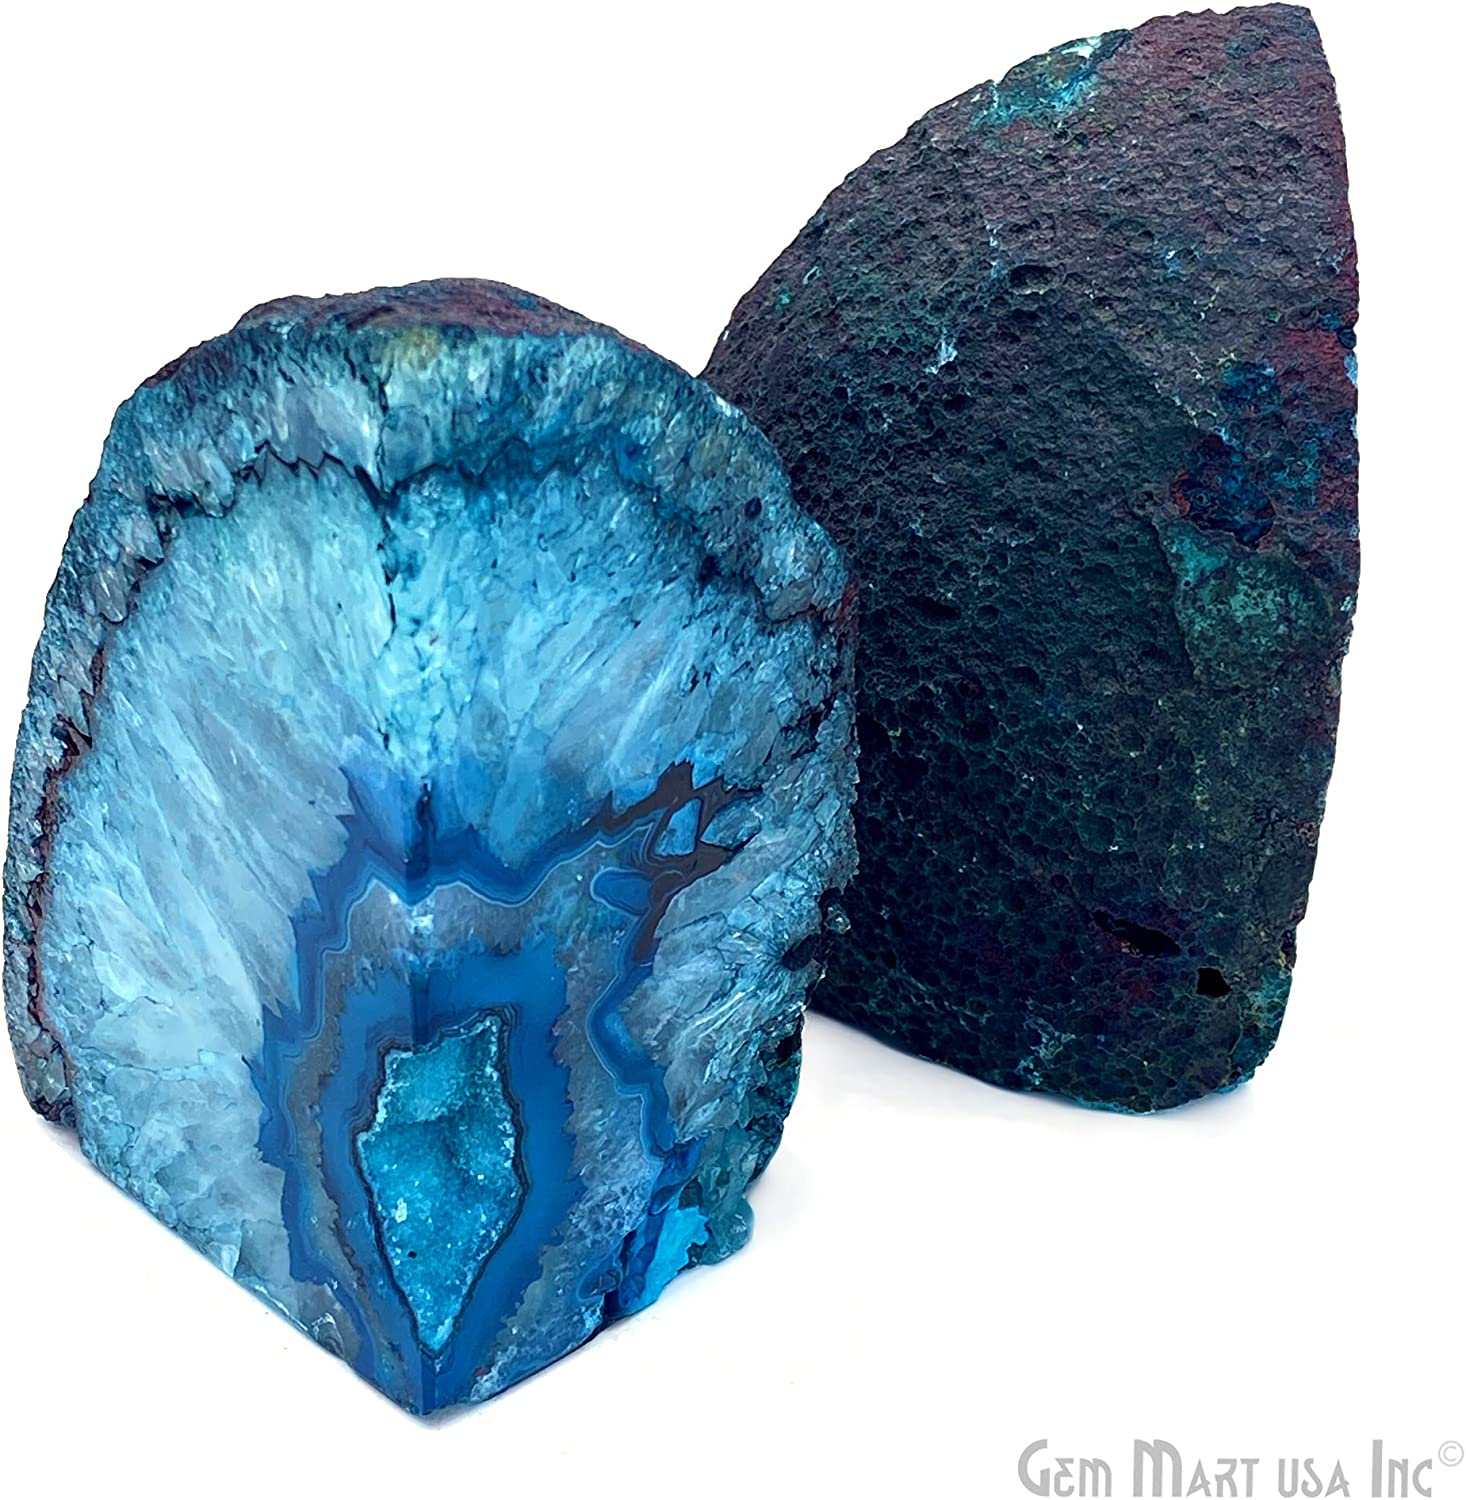 Decorative Genuine Natural Mineral Rock Formation Crafted into Bookends for Gifting Purposes Agate Geode Bookend BKBU-10121